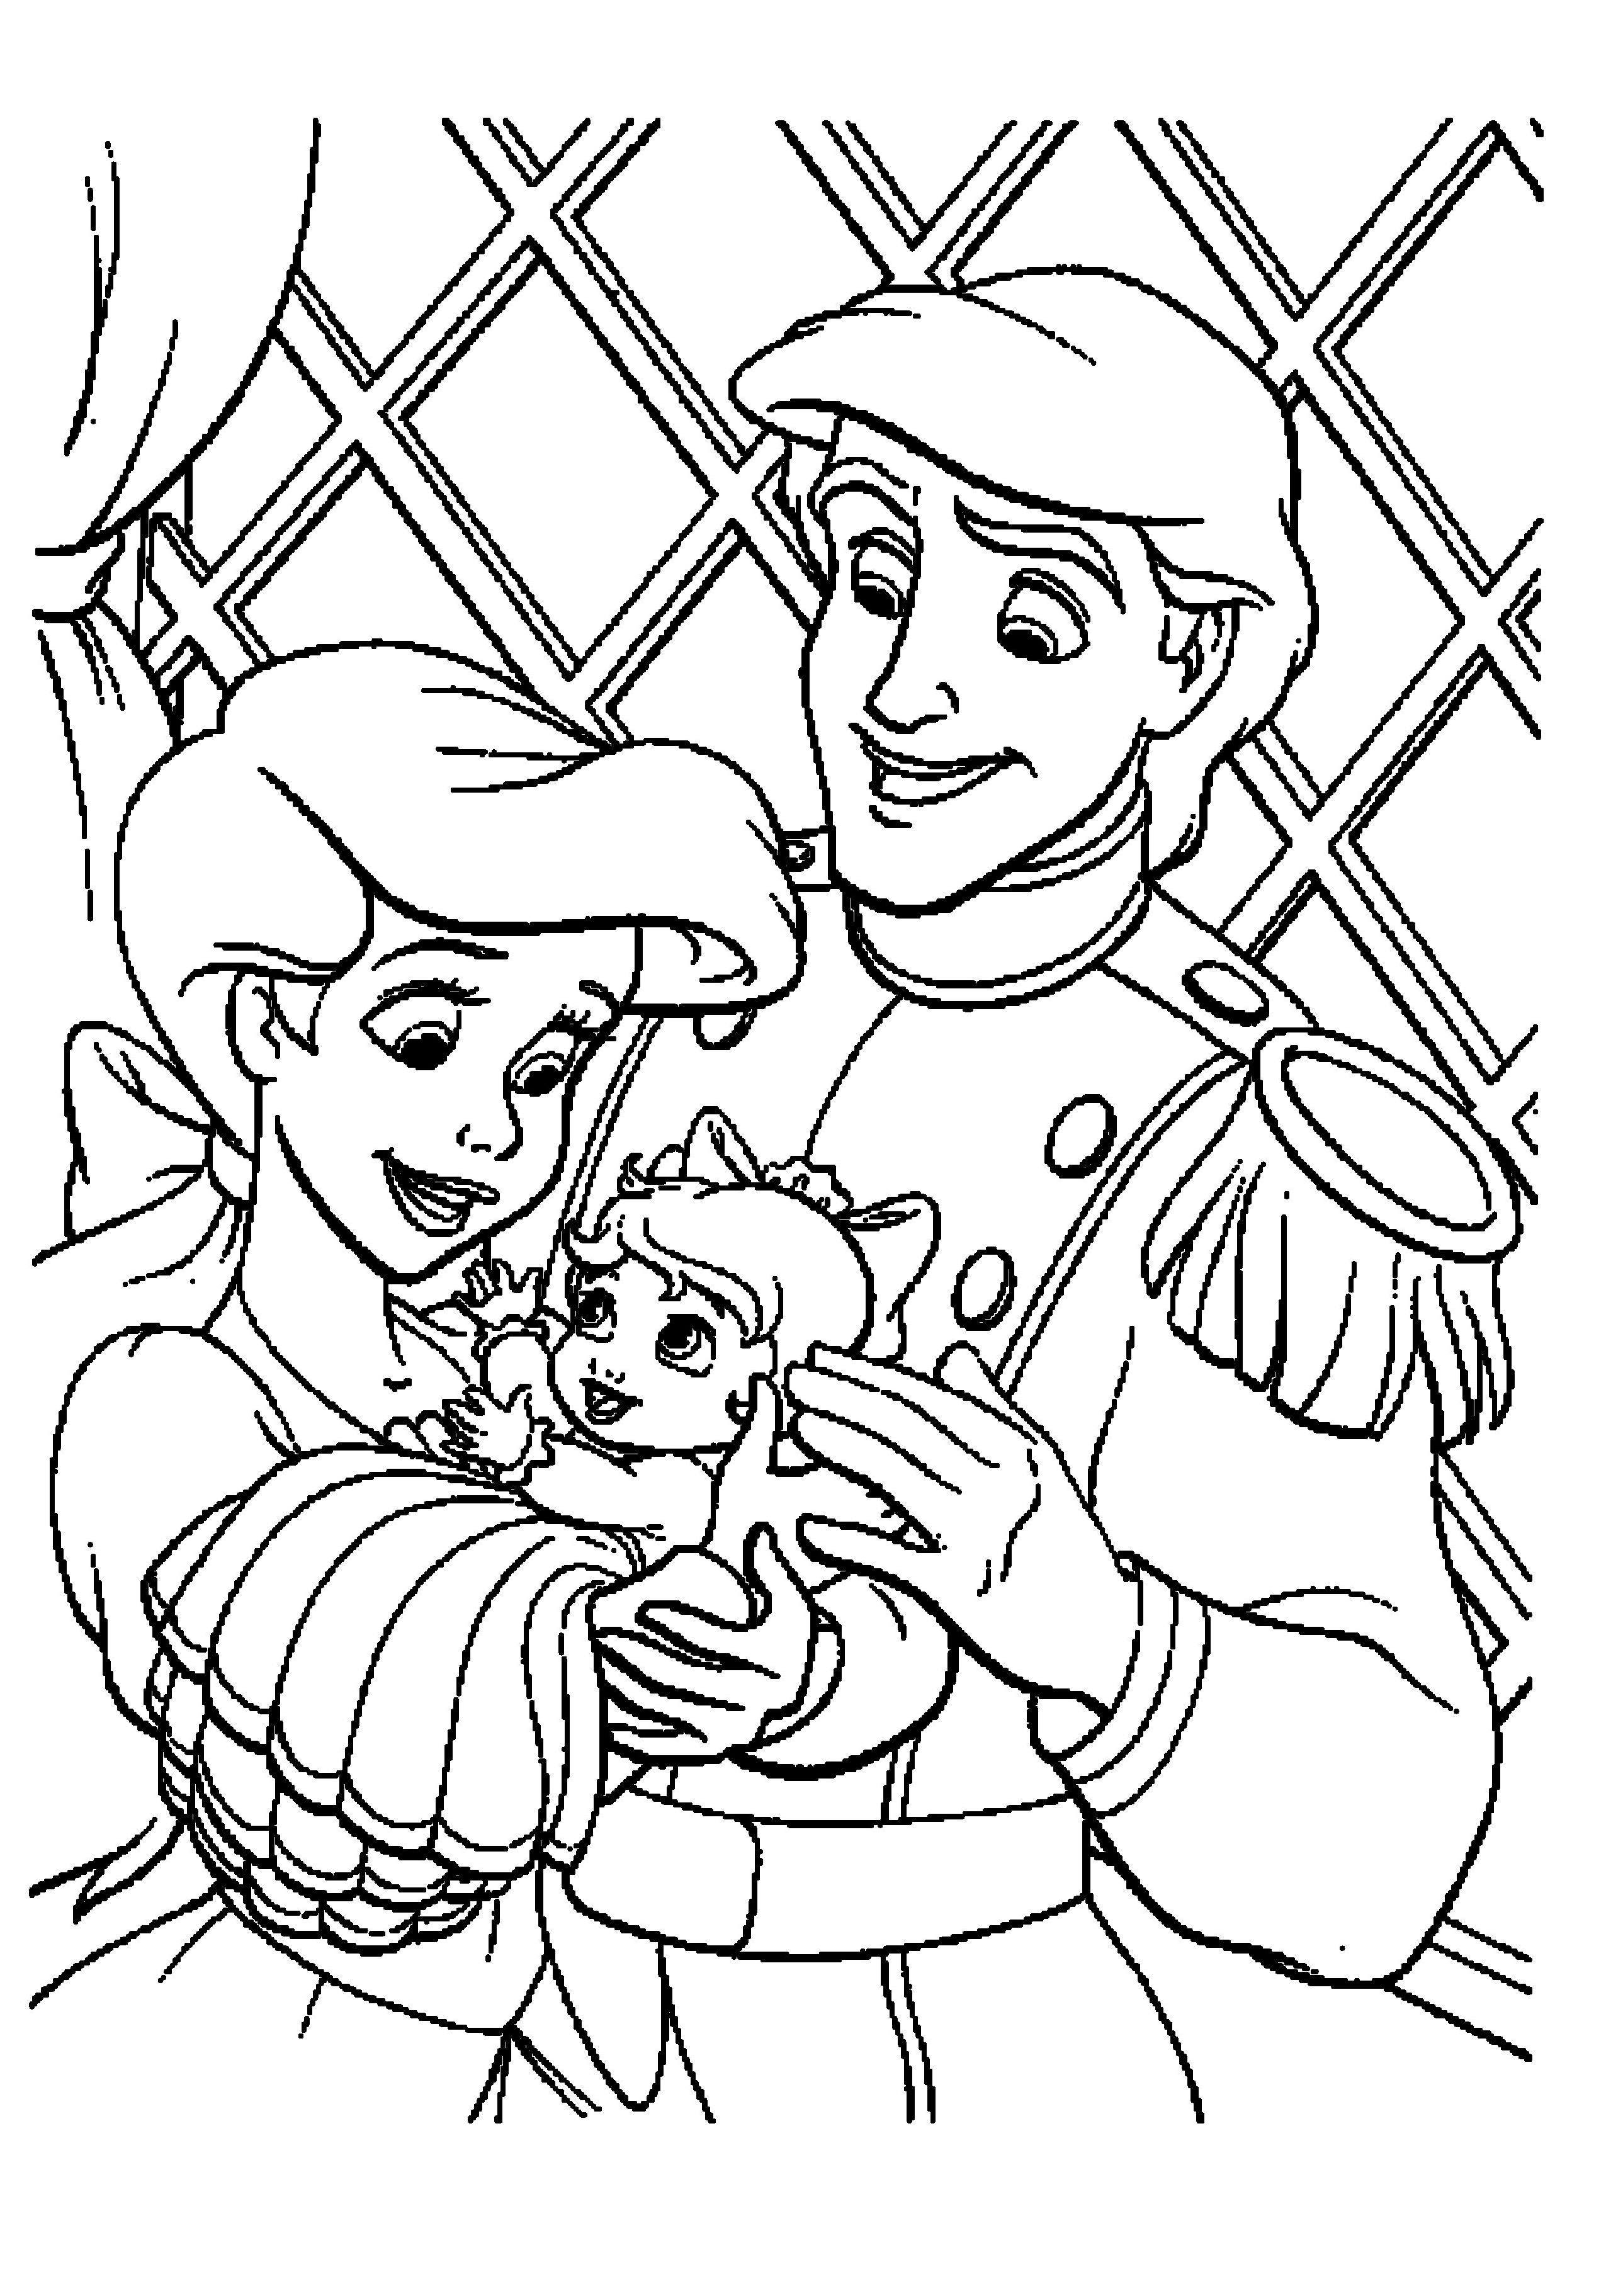 Ariel Little Mermaid Coloring Pages Family Prince And Kids